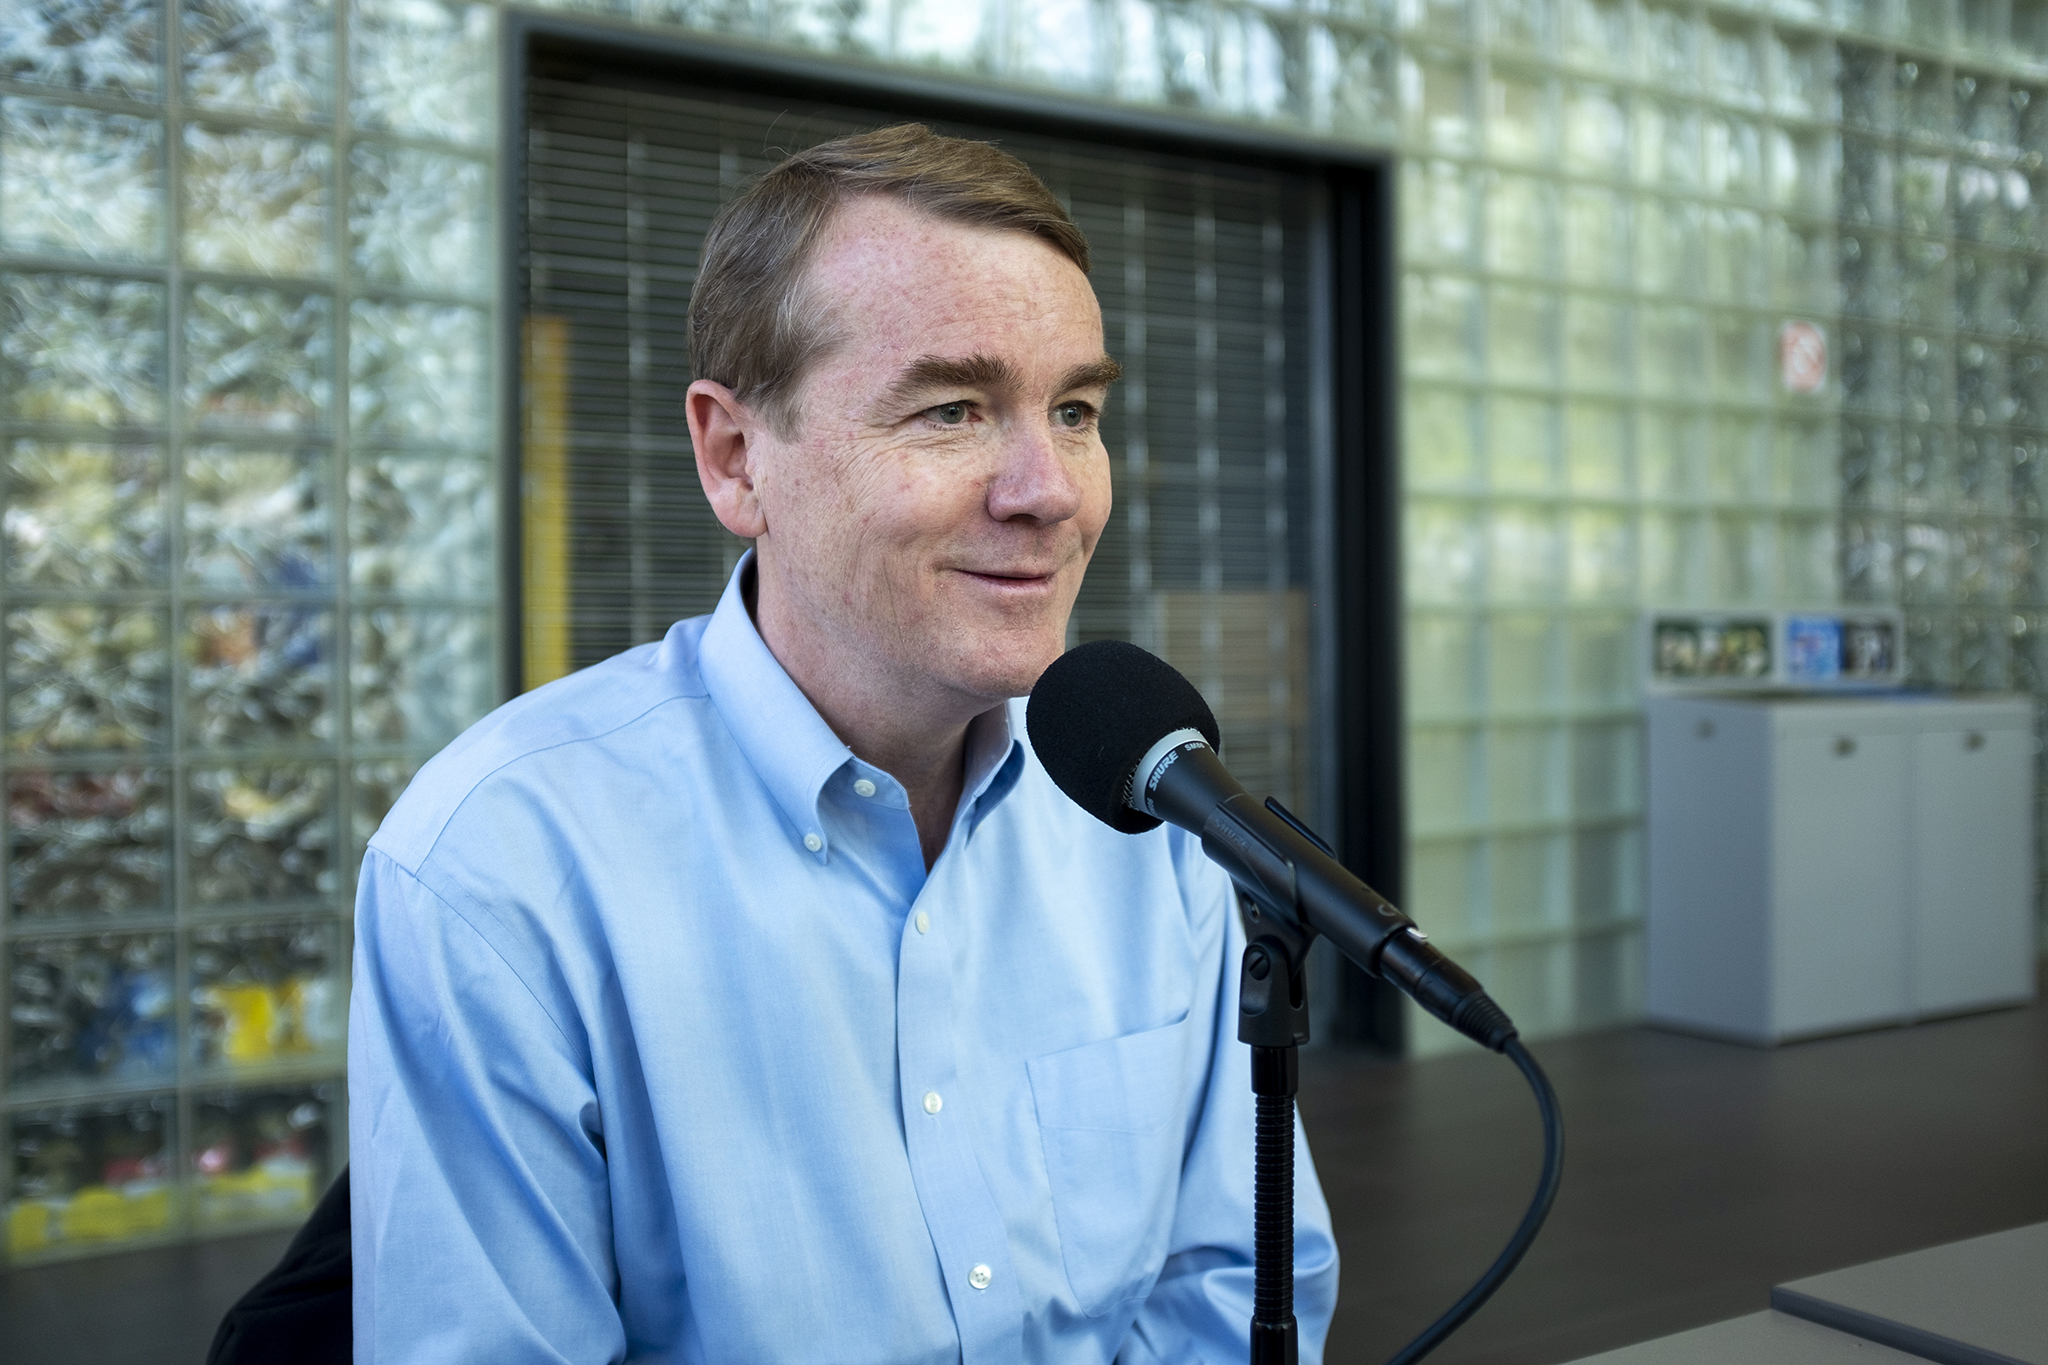 <p><u>U.S.</u>Sen. Michael Bennet speaks to Colorado Matters about his Democratic presidential campaign on theAurariacampus in Denver, May 4, 2019.</p>